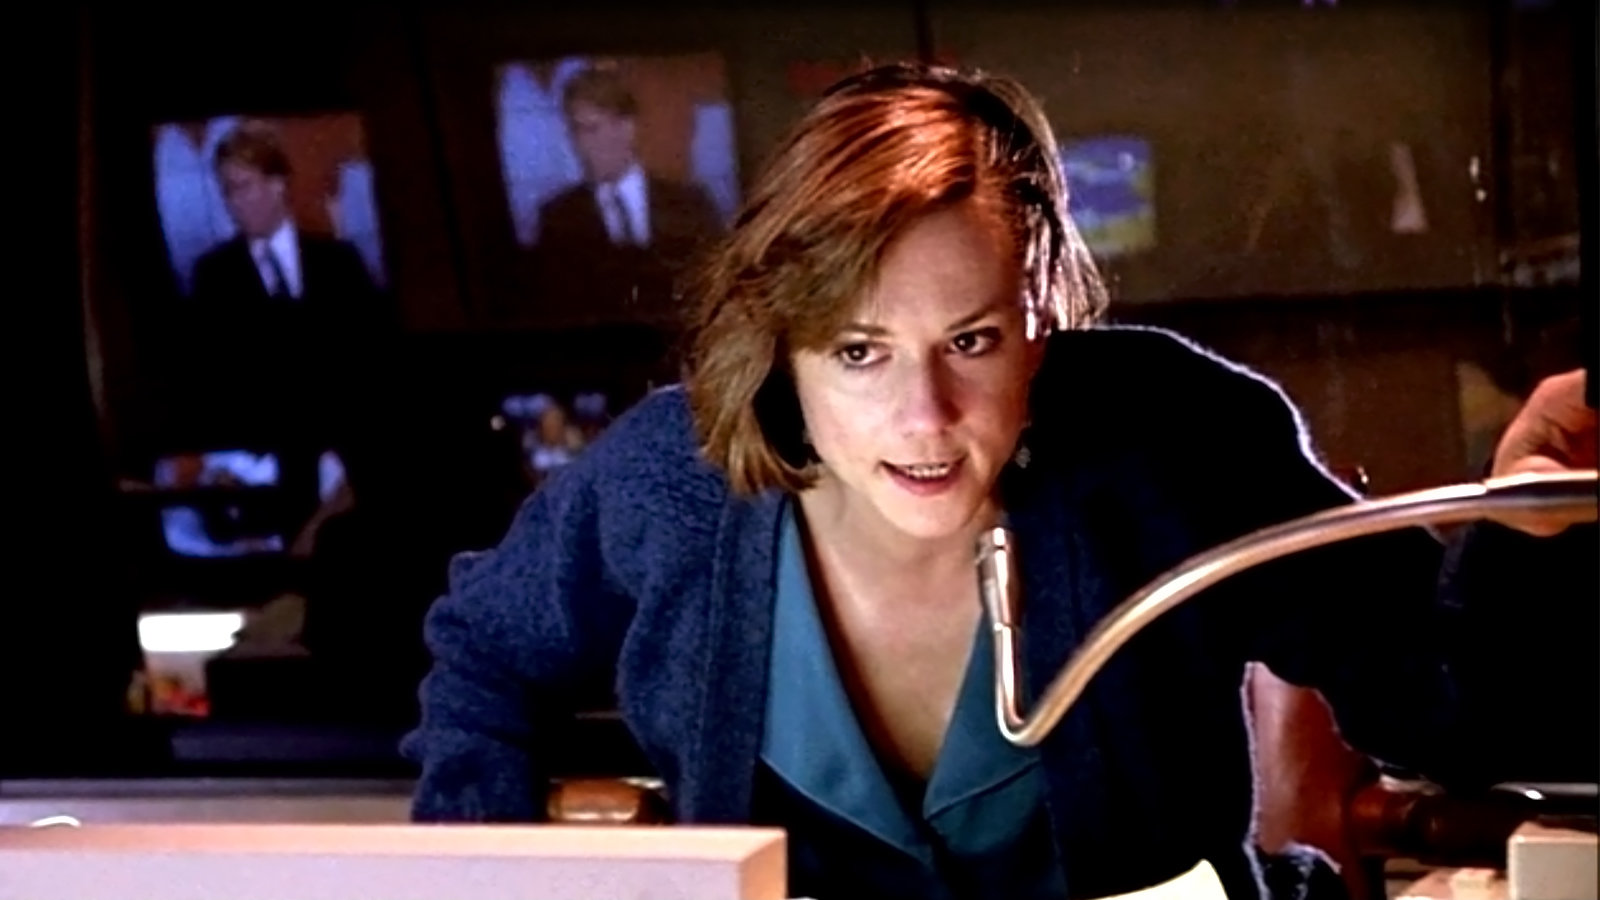 This is Holly Hunter playing me in Broadcast News